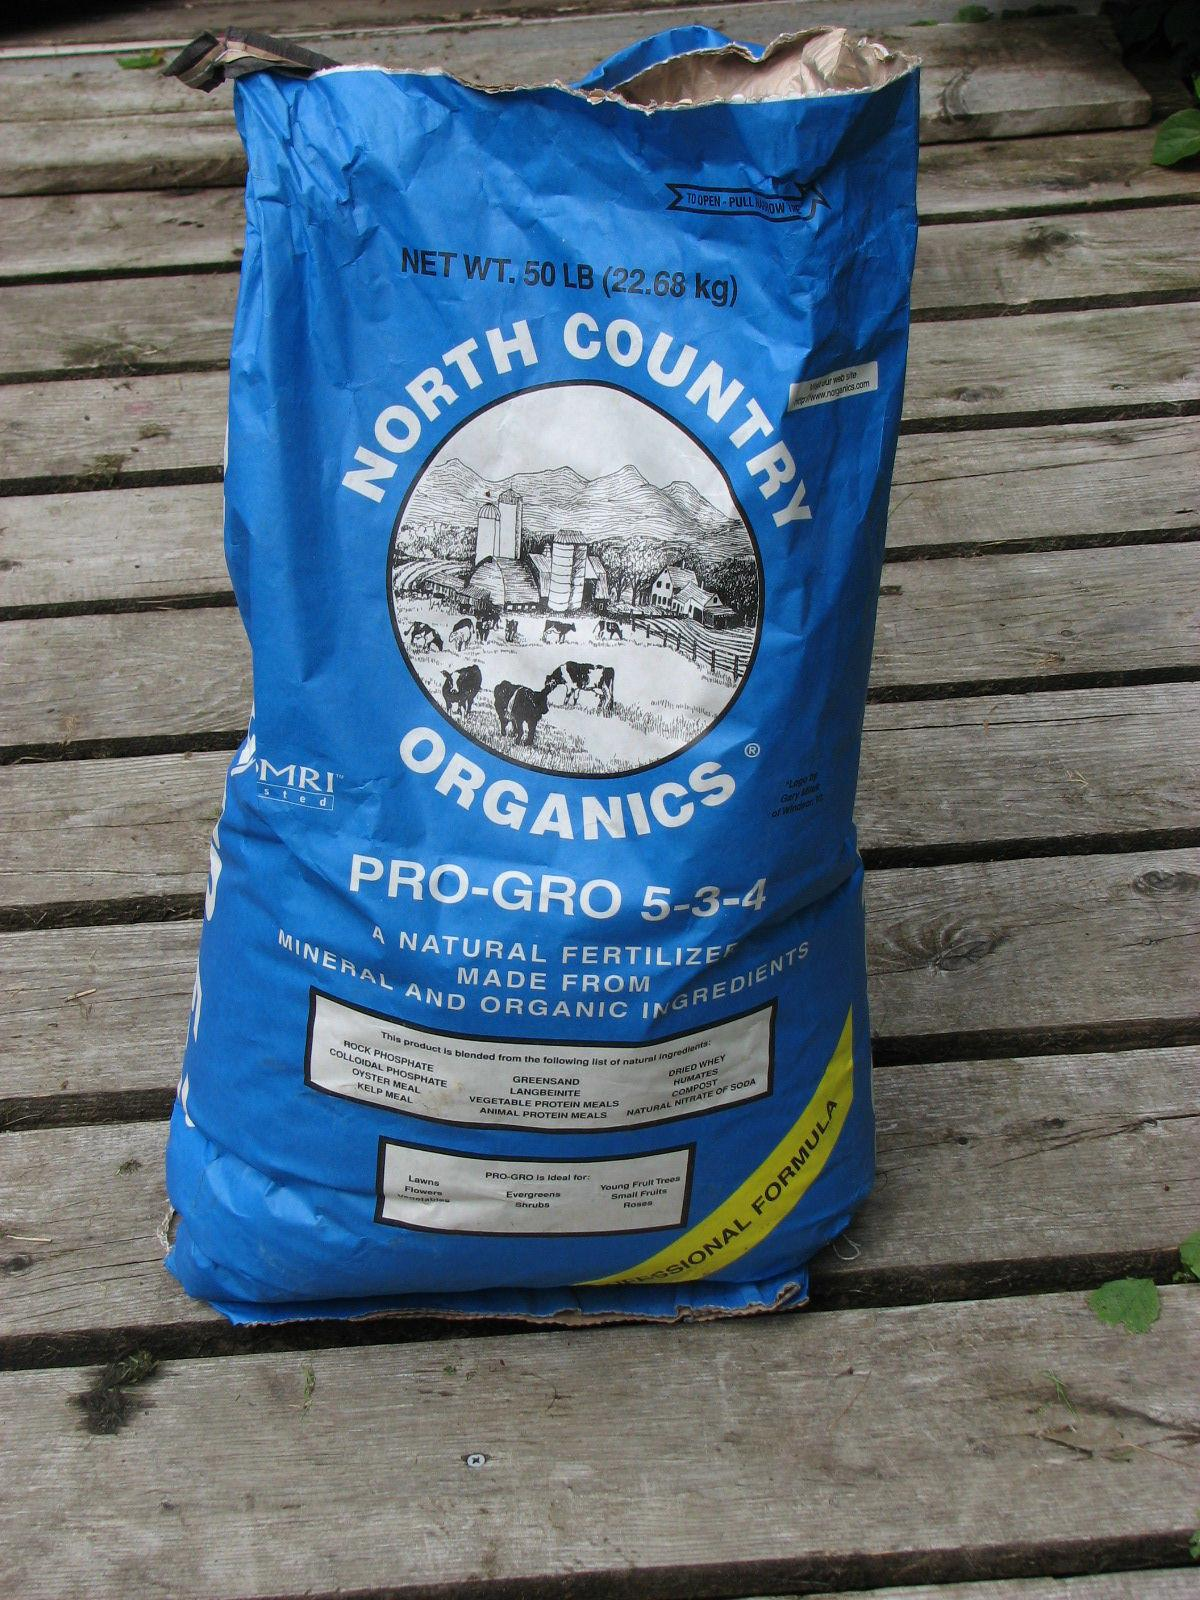 Organic fertilizers contain more healthy minerals than chemical fertilizers 002.jpg